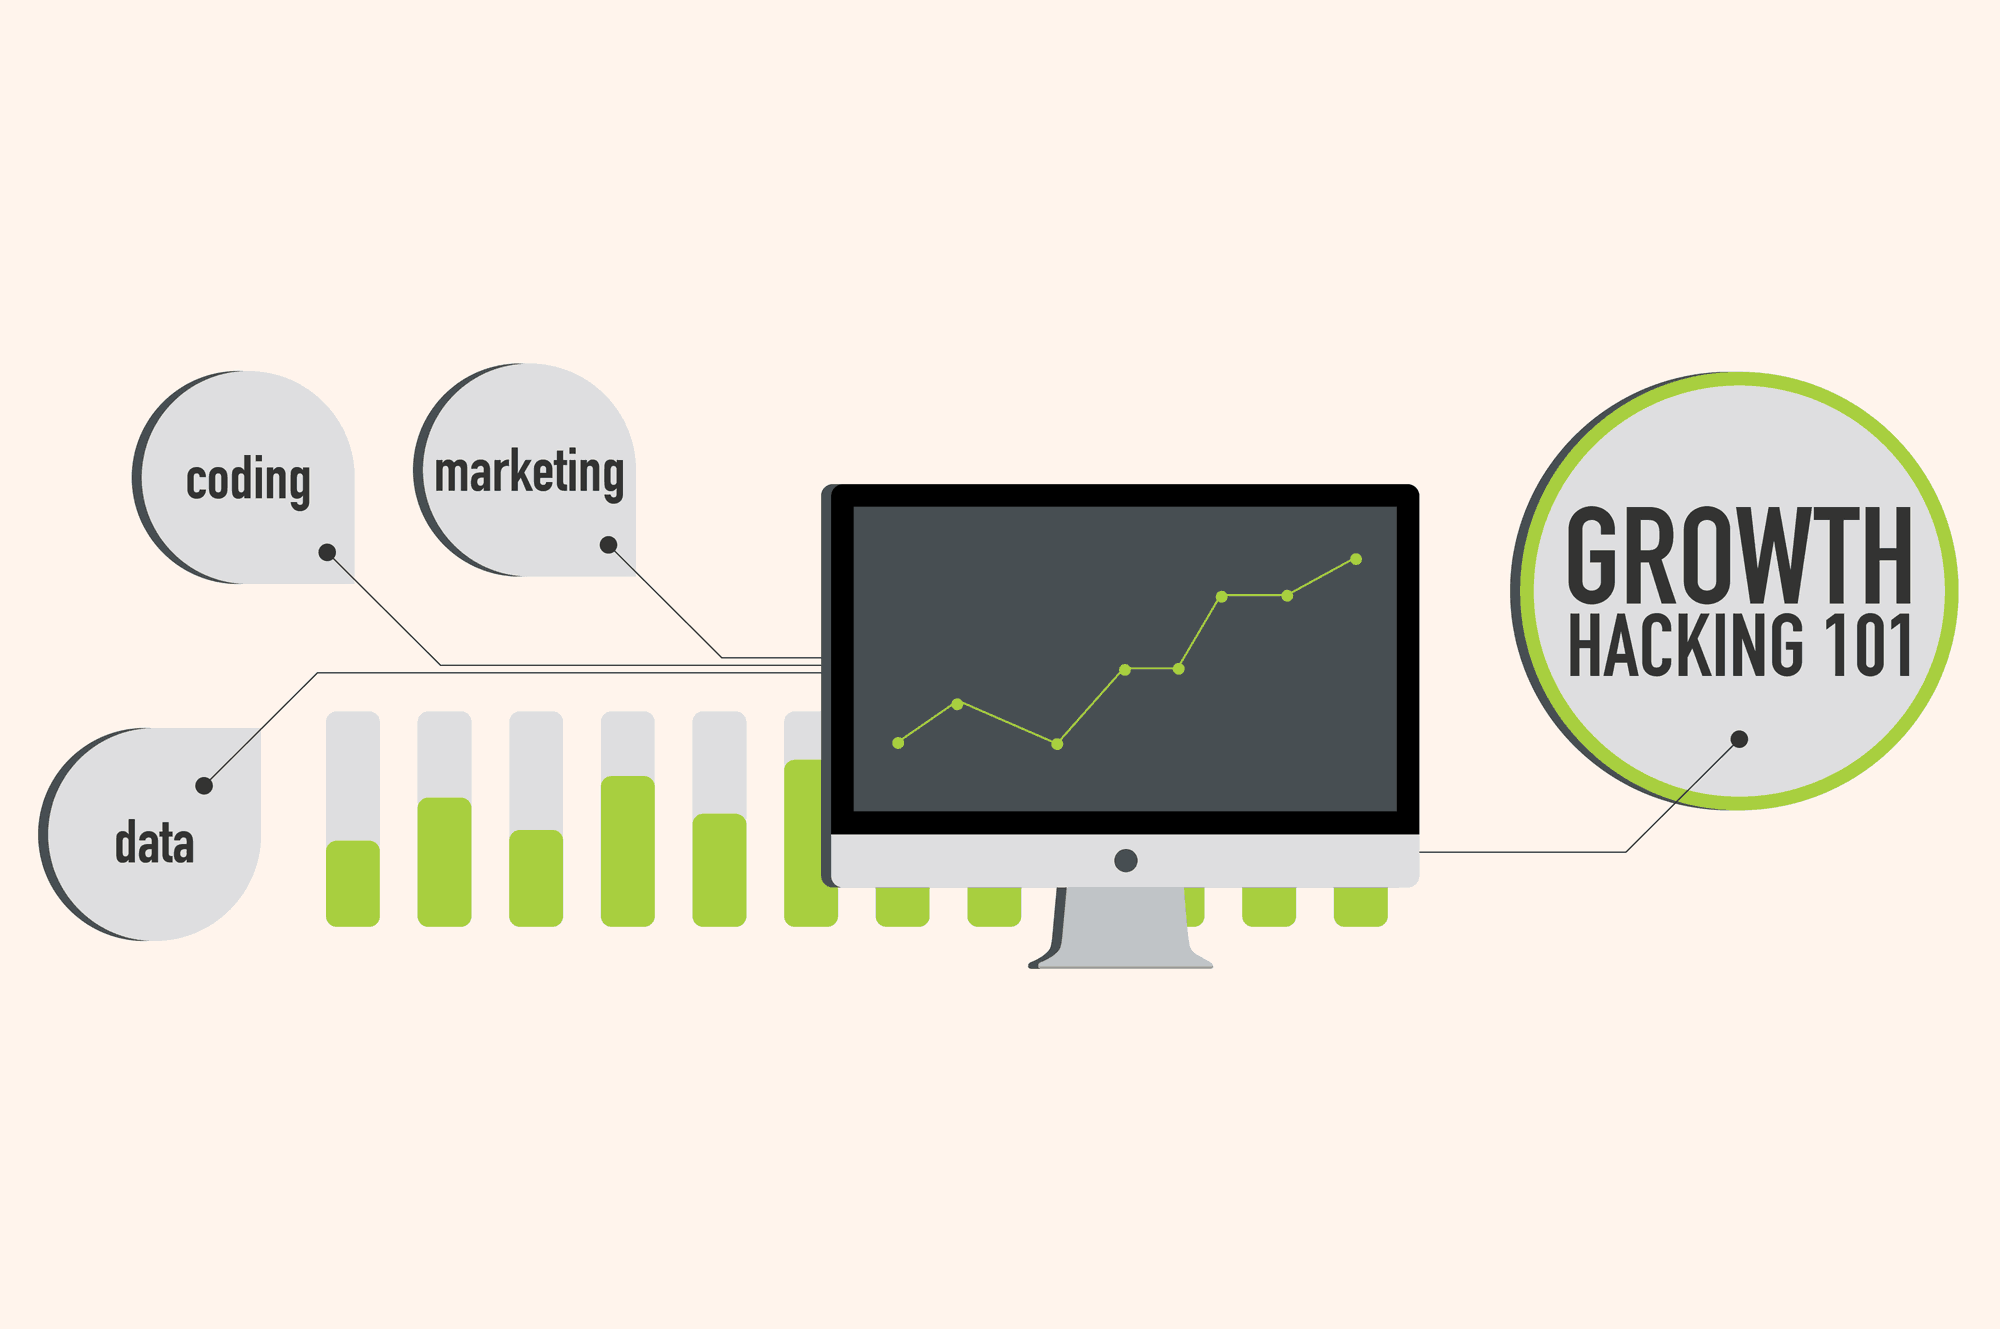 growthrocks introduction to growth hacking1